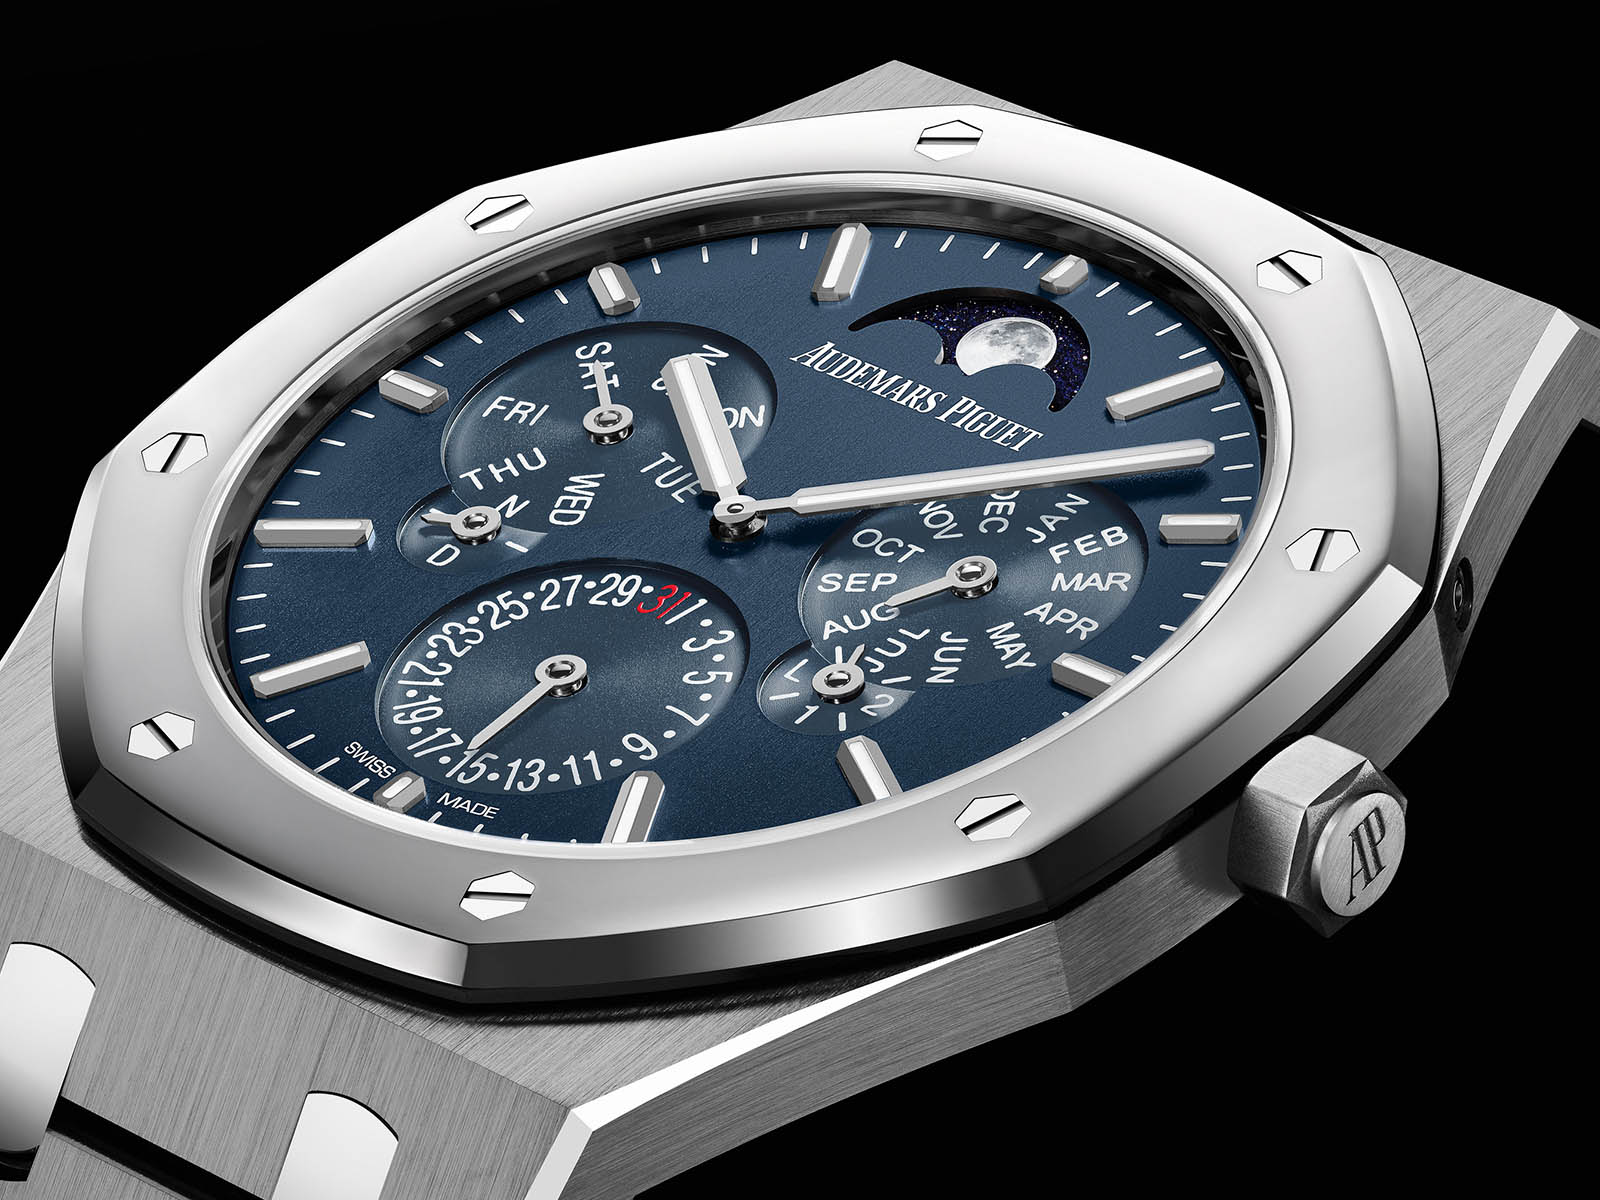 26586ip-oo-1240ip-01-audemars-piguet-royal-oak-perpetual-calendar-ultra-thin-1.jpg